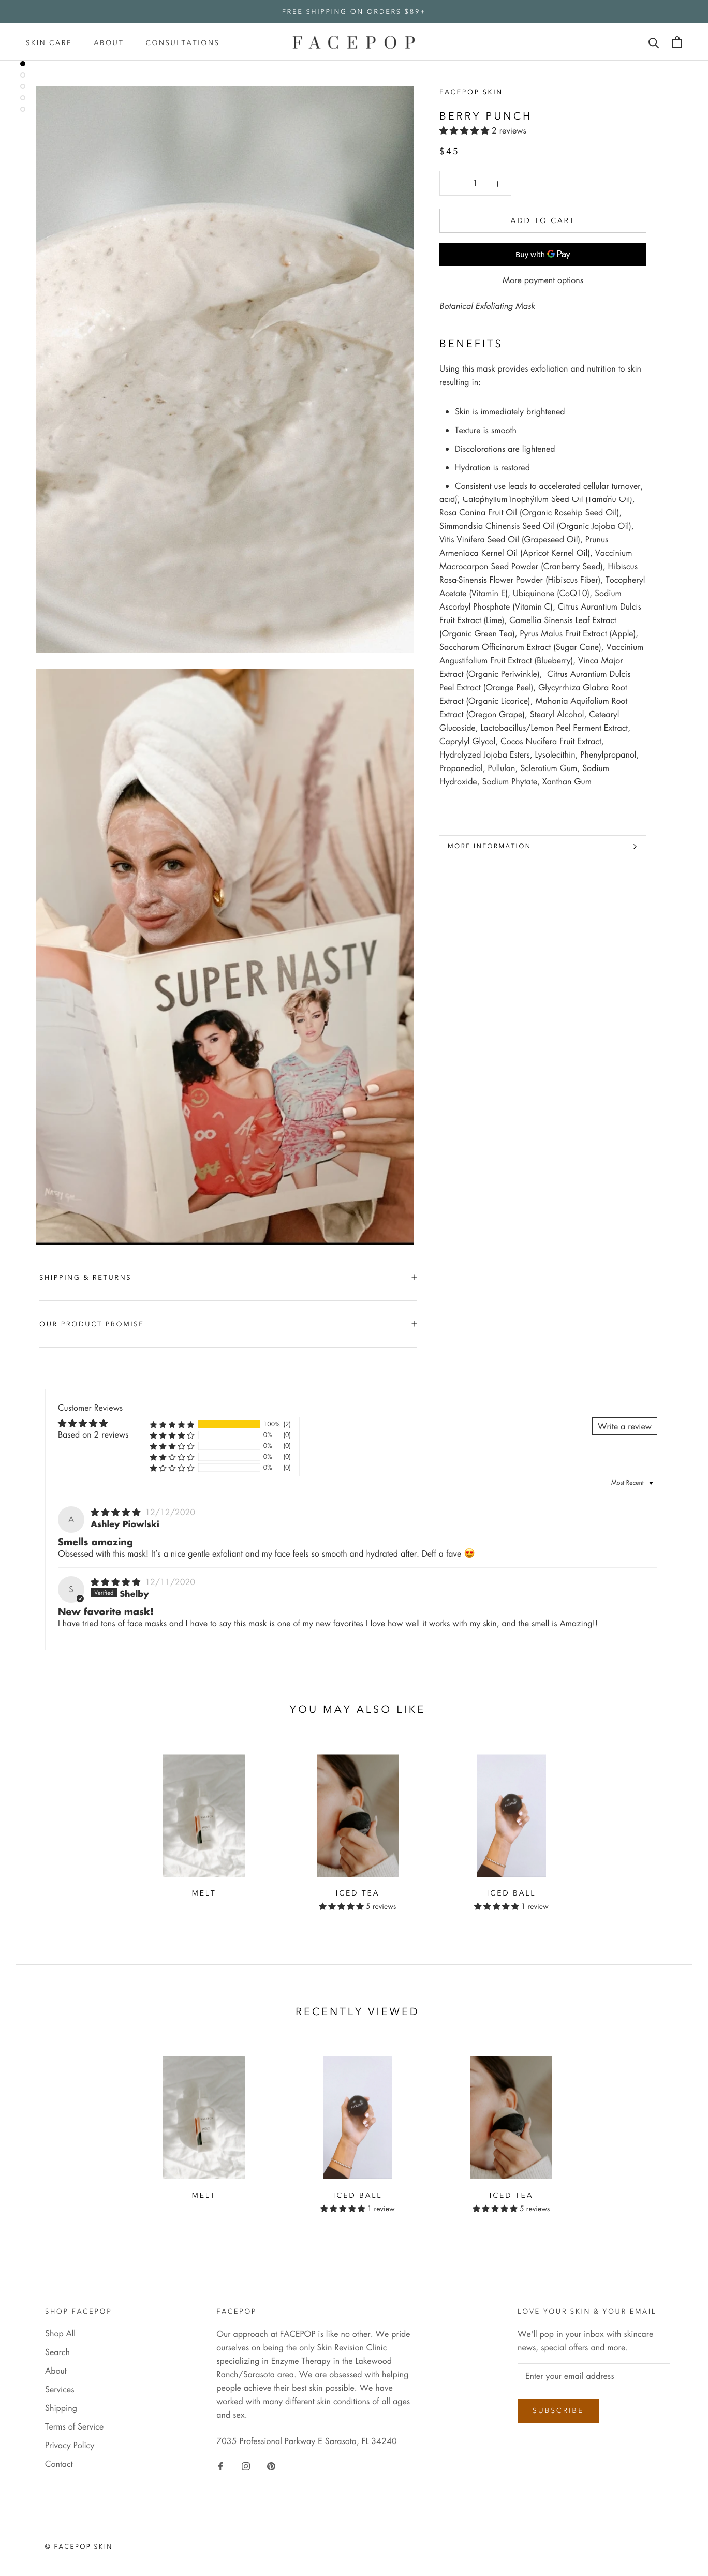 facepop product page design shopify